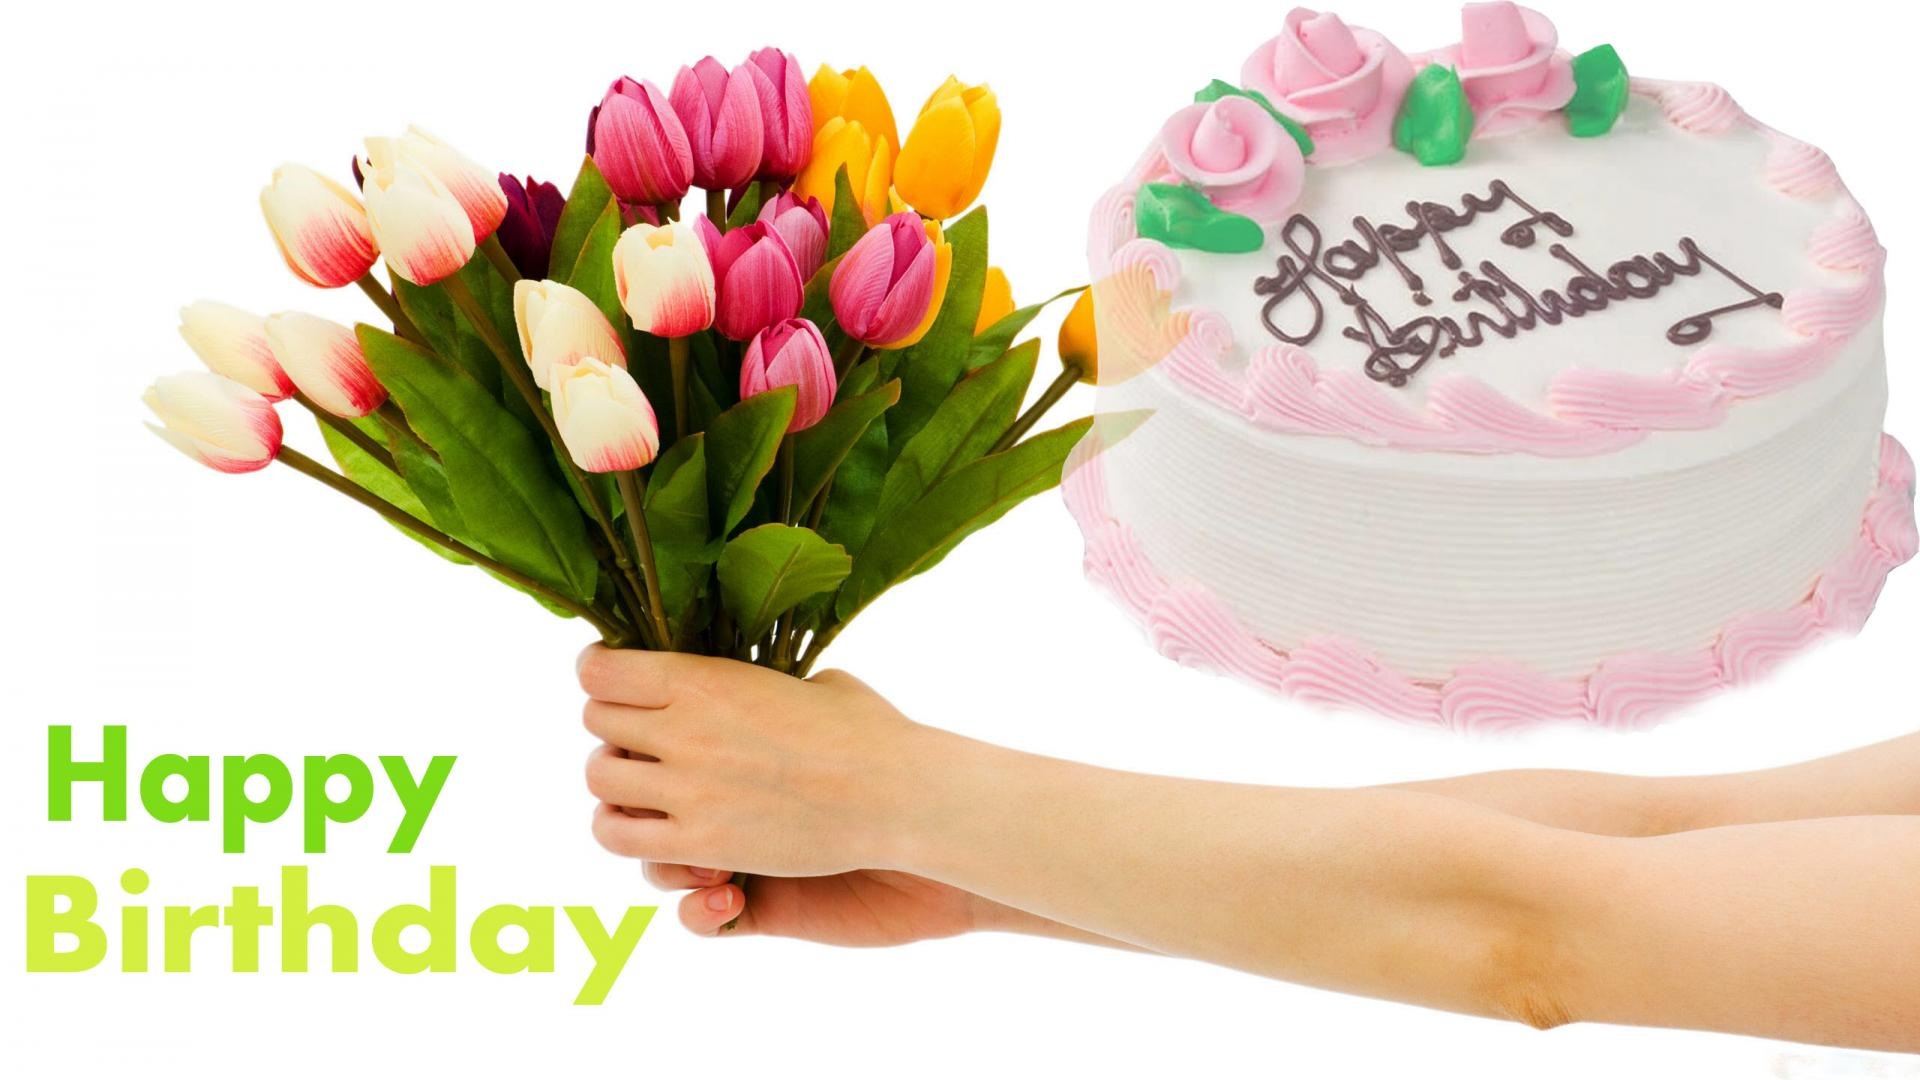 1080 In 34 Great Photo Of Happy Birthday Cake And Flowers Images